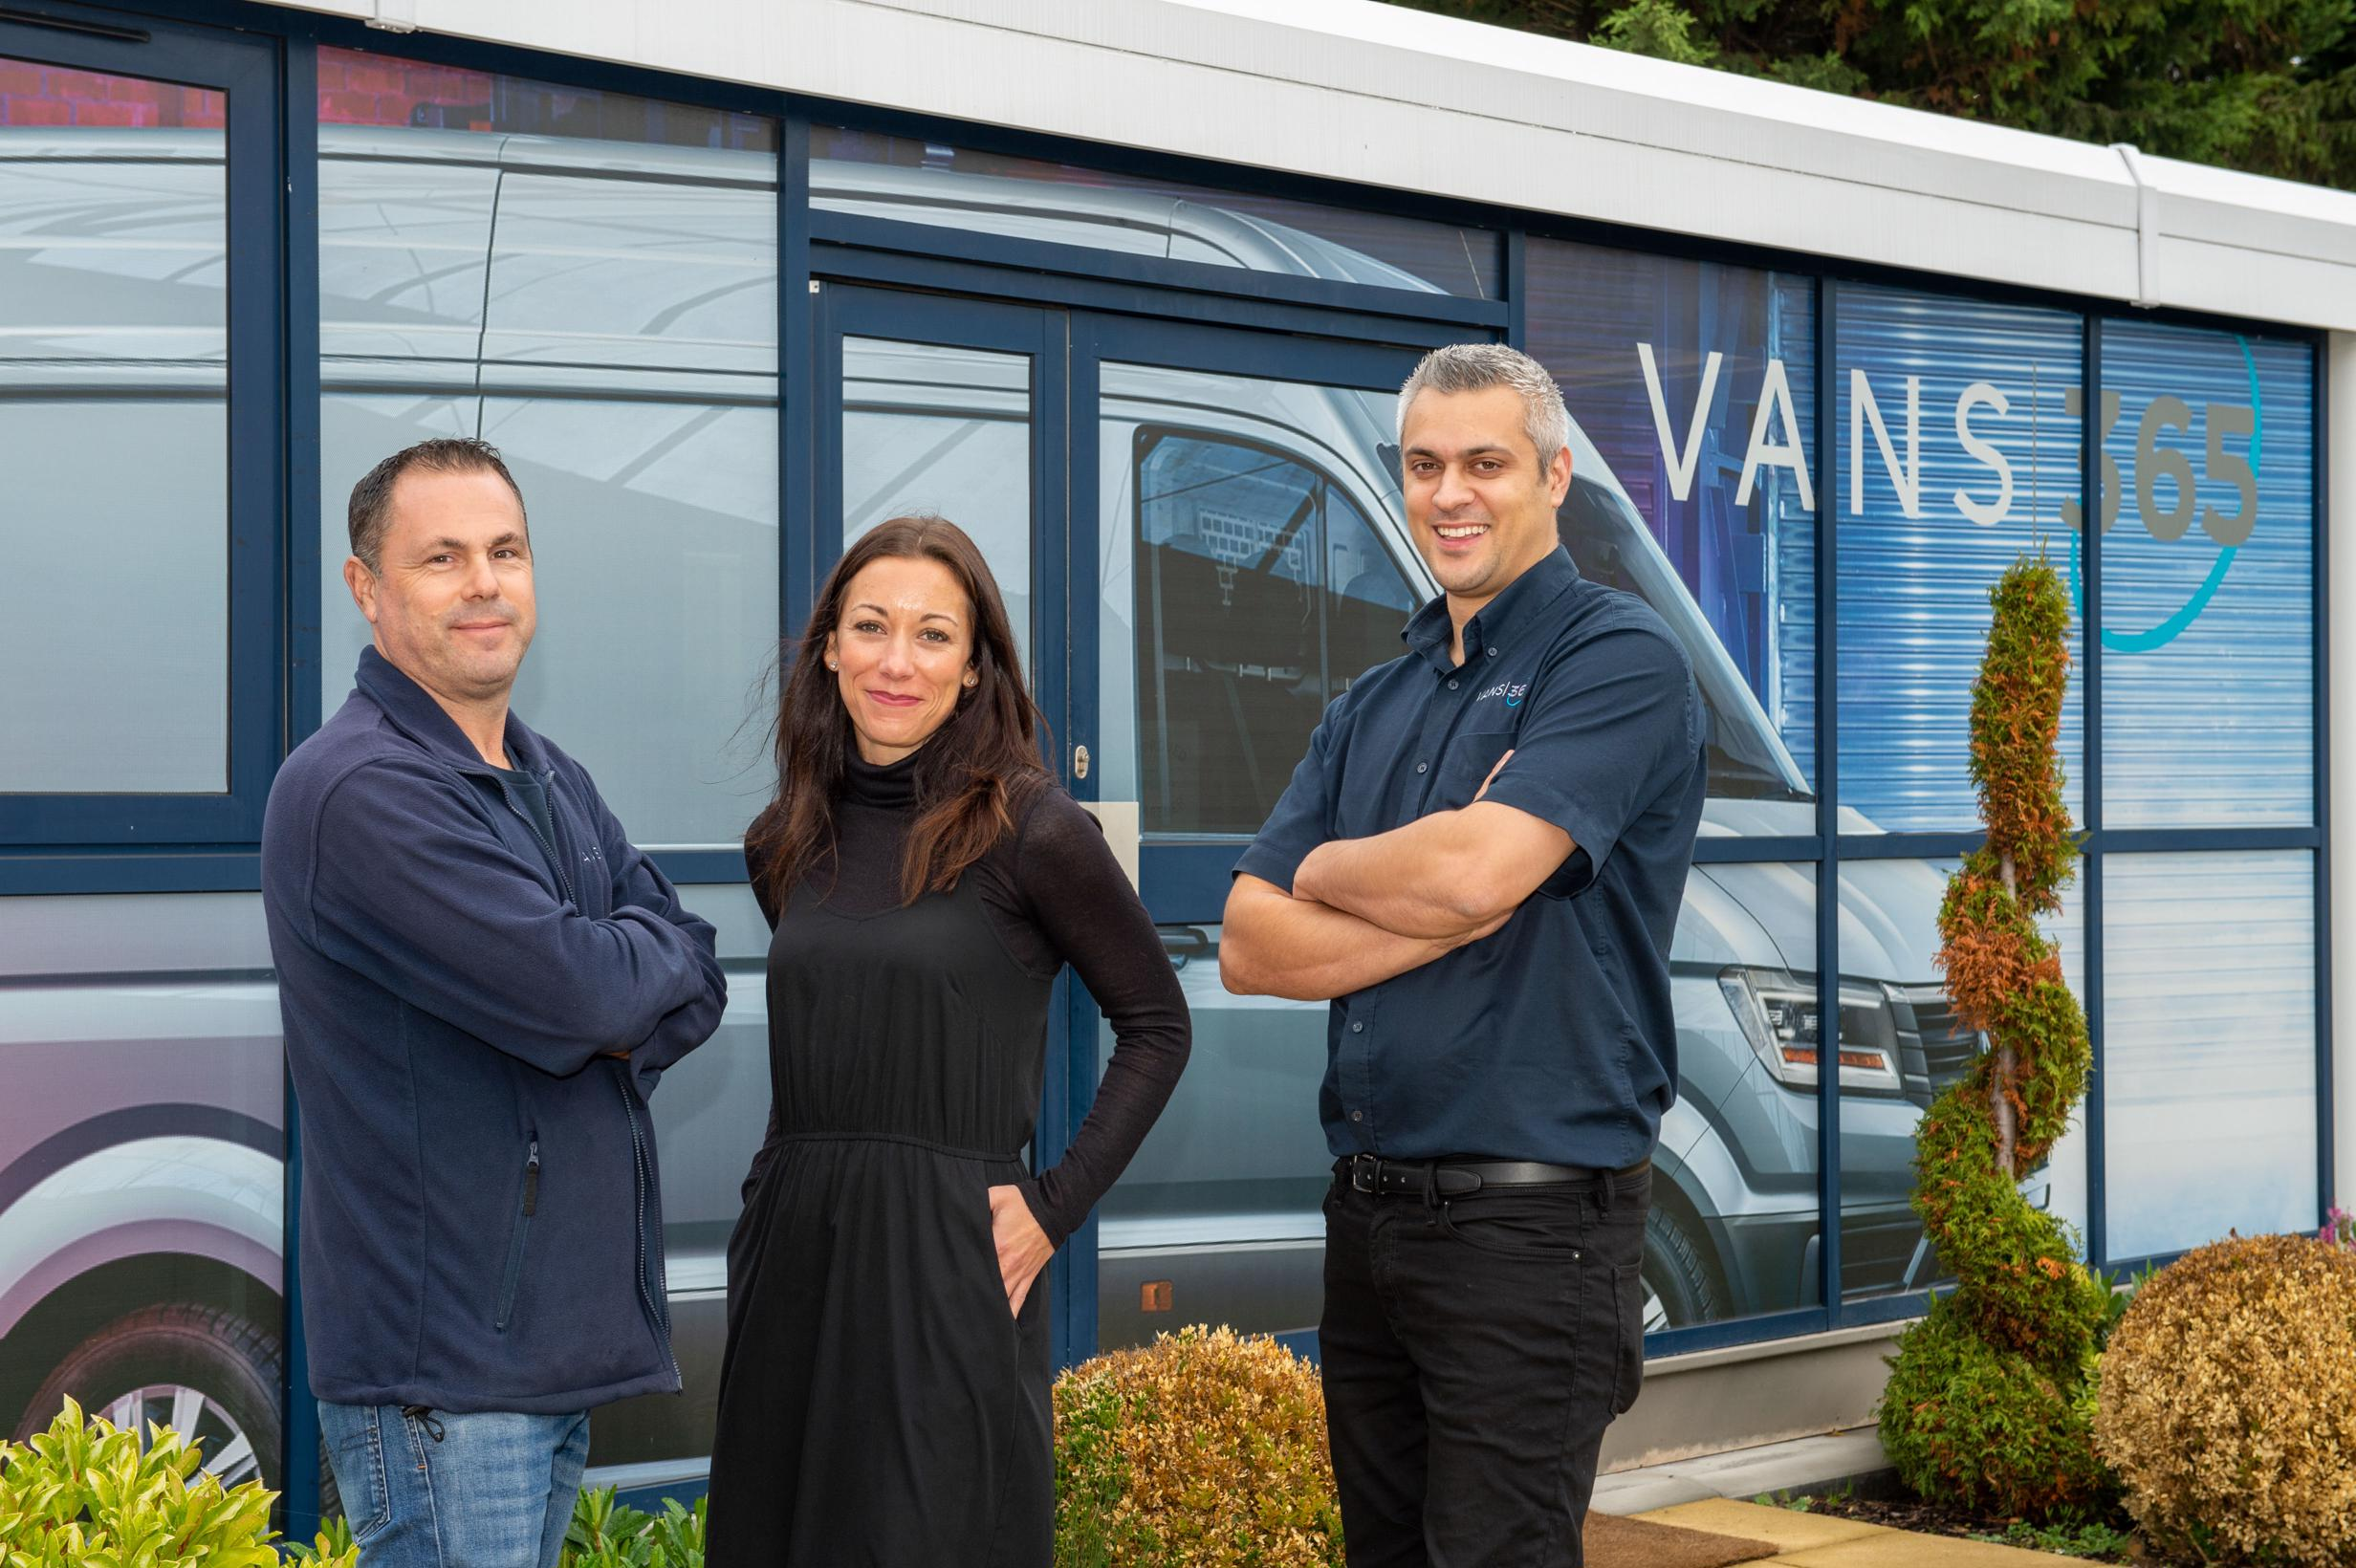 Members of the Vans 365 team standing in front of the Vans 365 office